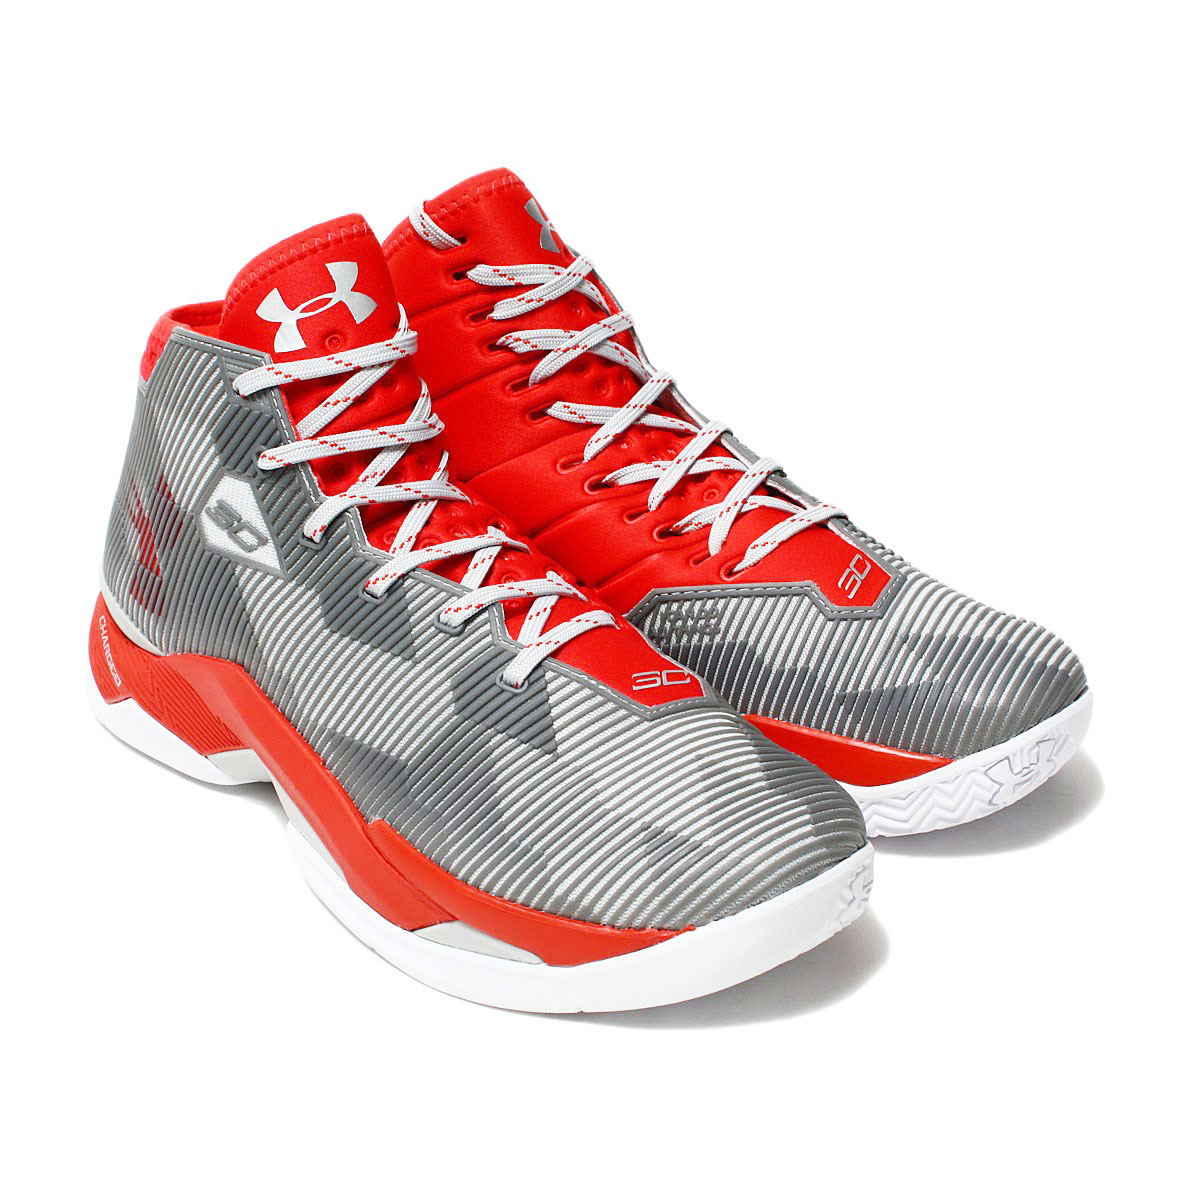 UNDER ARMOUR UA CURRY 2.5(アンダーアーマー UA カリー 2.5)(RED/ALM/RED)17HO-I